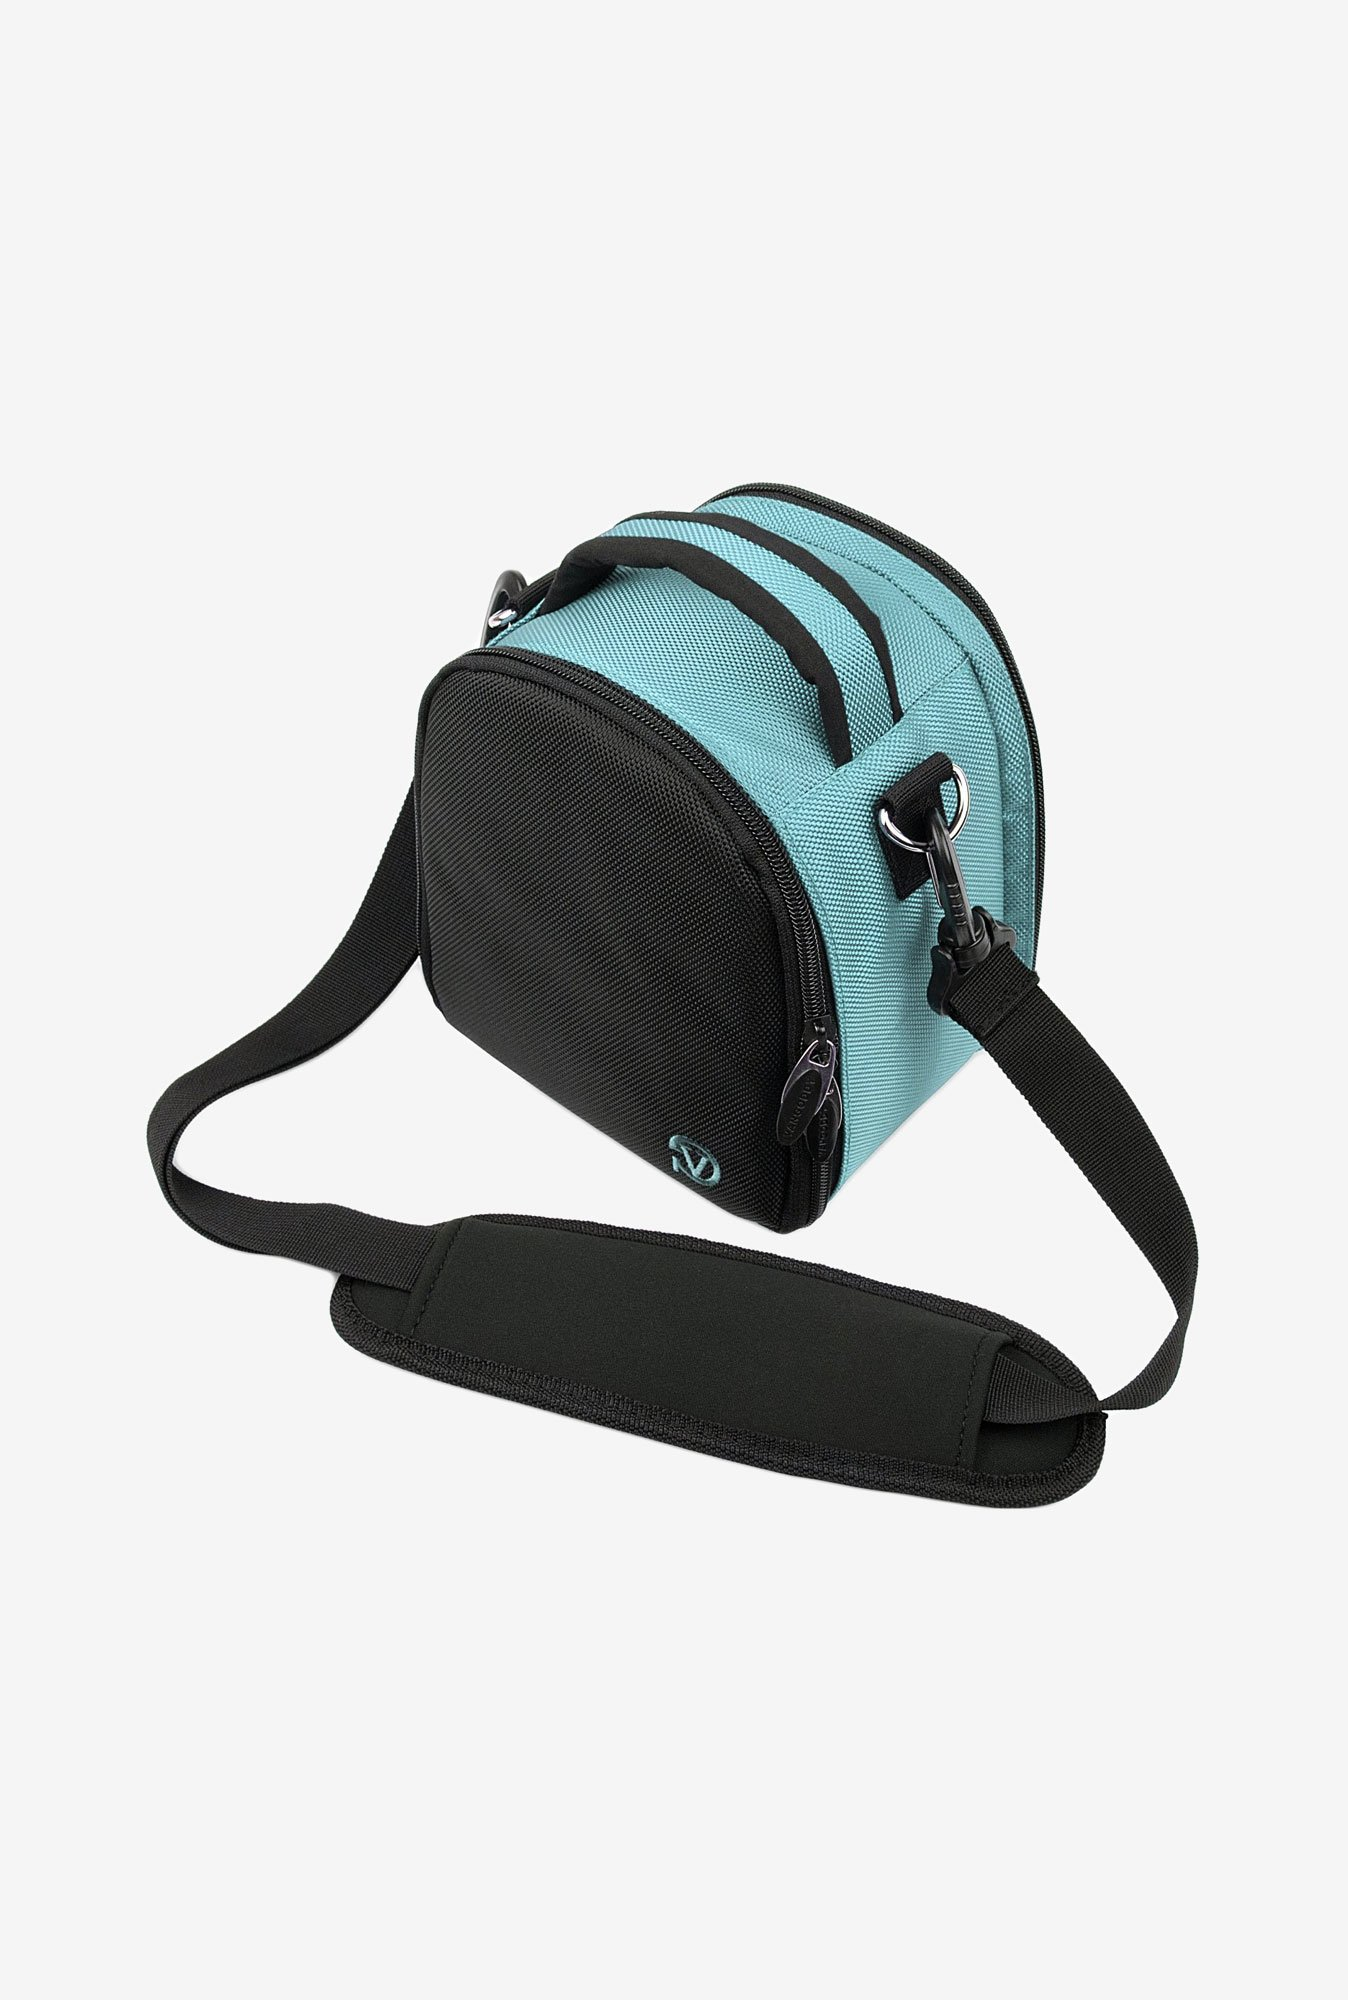 Vangoddy VGLaurelSBLU Laurel DSLR Camera Case (Sky Blue)